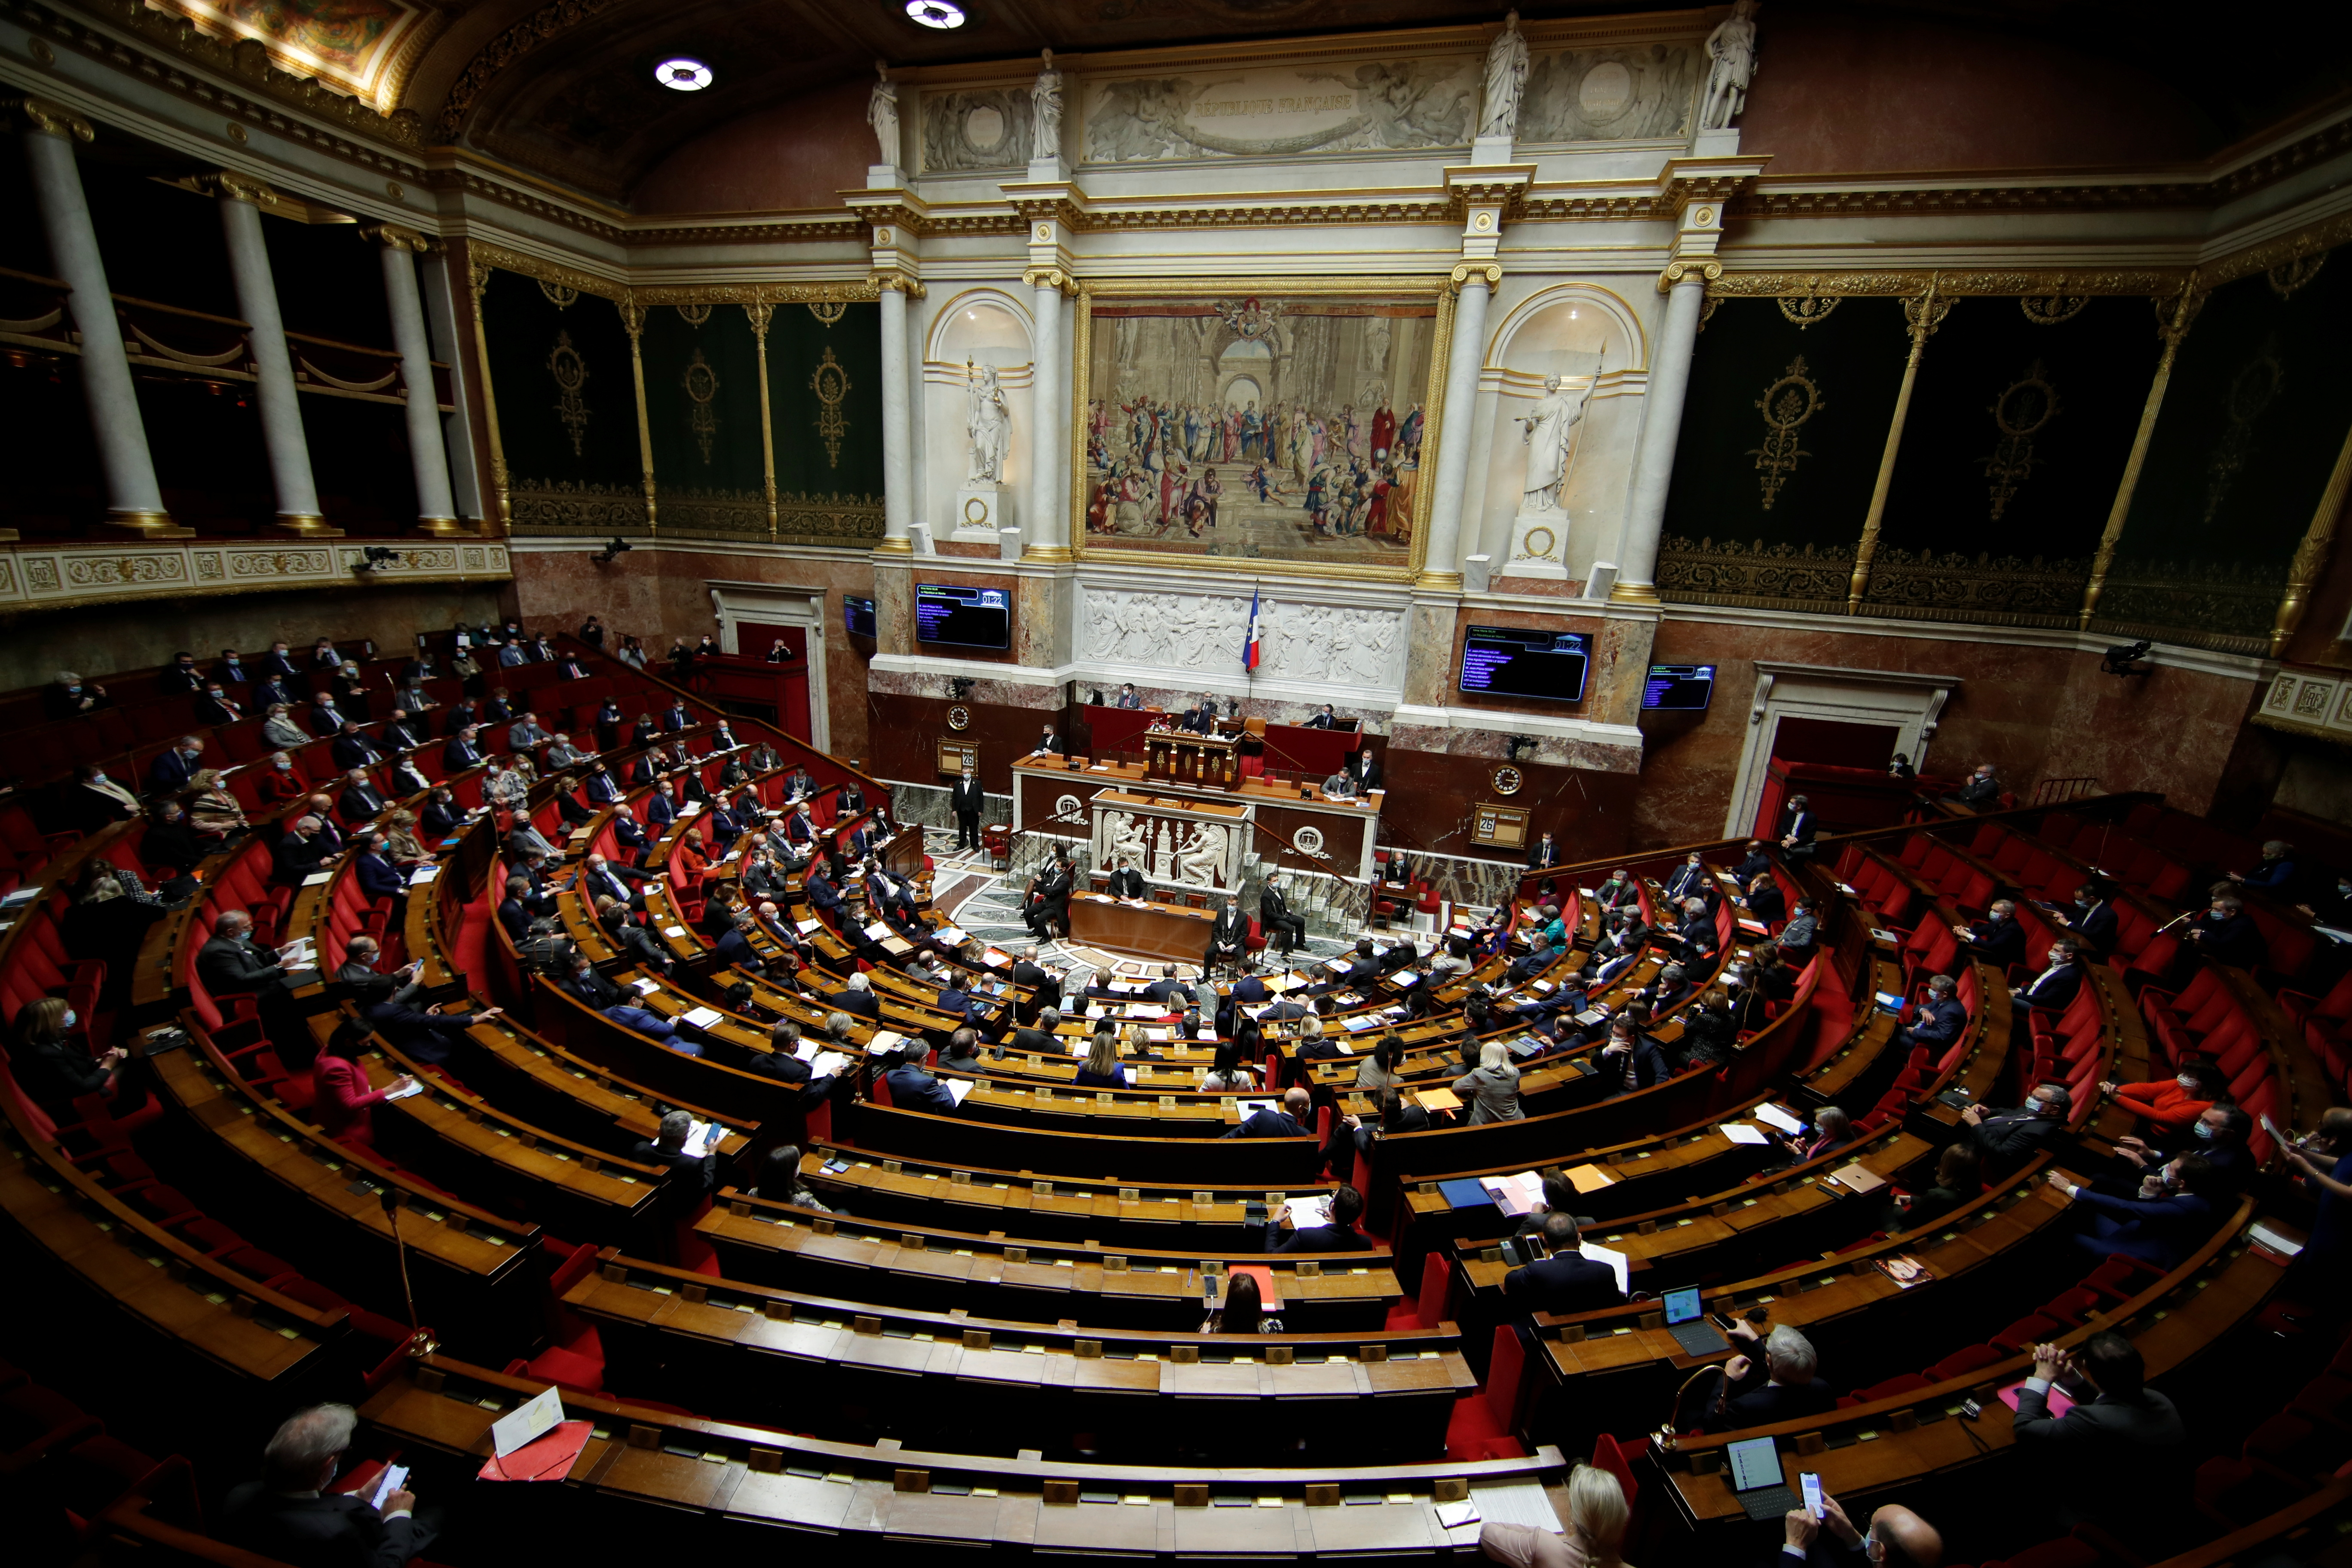 A general view shows the hemicycle during the questions to the government session at the National Assembly in Paris amid the coronavirus disease (COVID-19) outbreak in France, January 26, 2021.  REUTERS/Gonzalo Fuentes